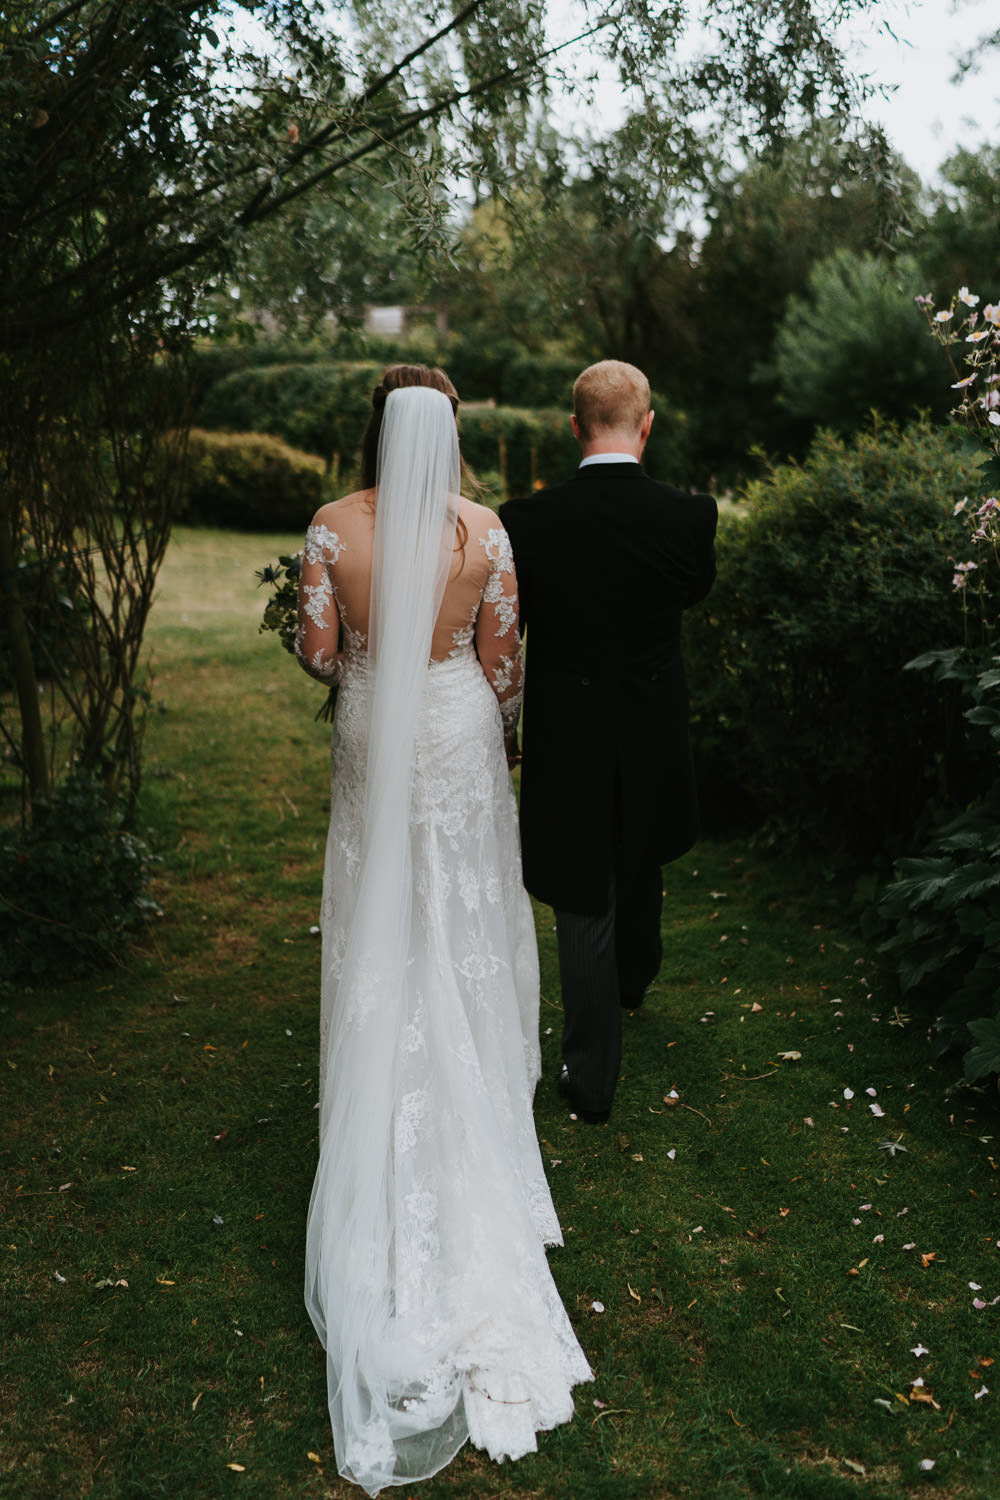 Dress Gown Bride Bridal Mori Lee Lace Sleeves Low Back Buttons Country Festival Wedding Jonny Gouldstone Photography